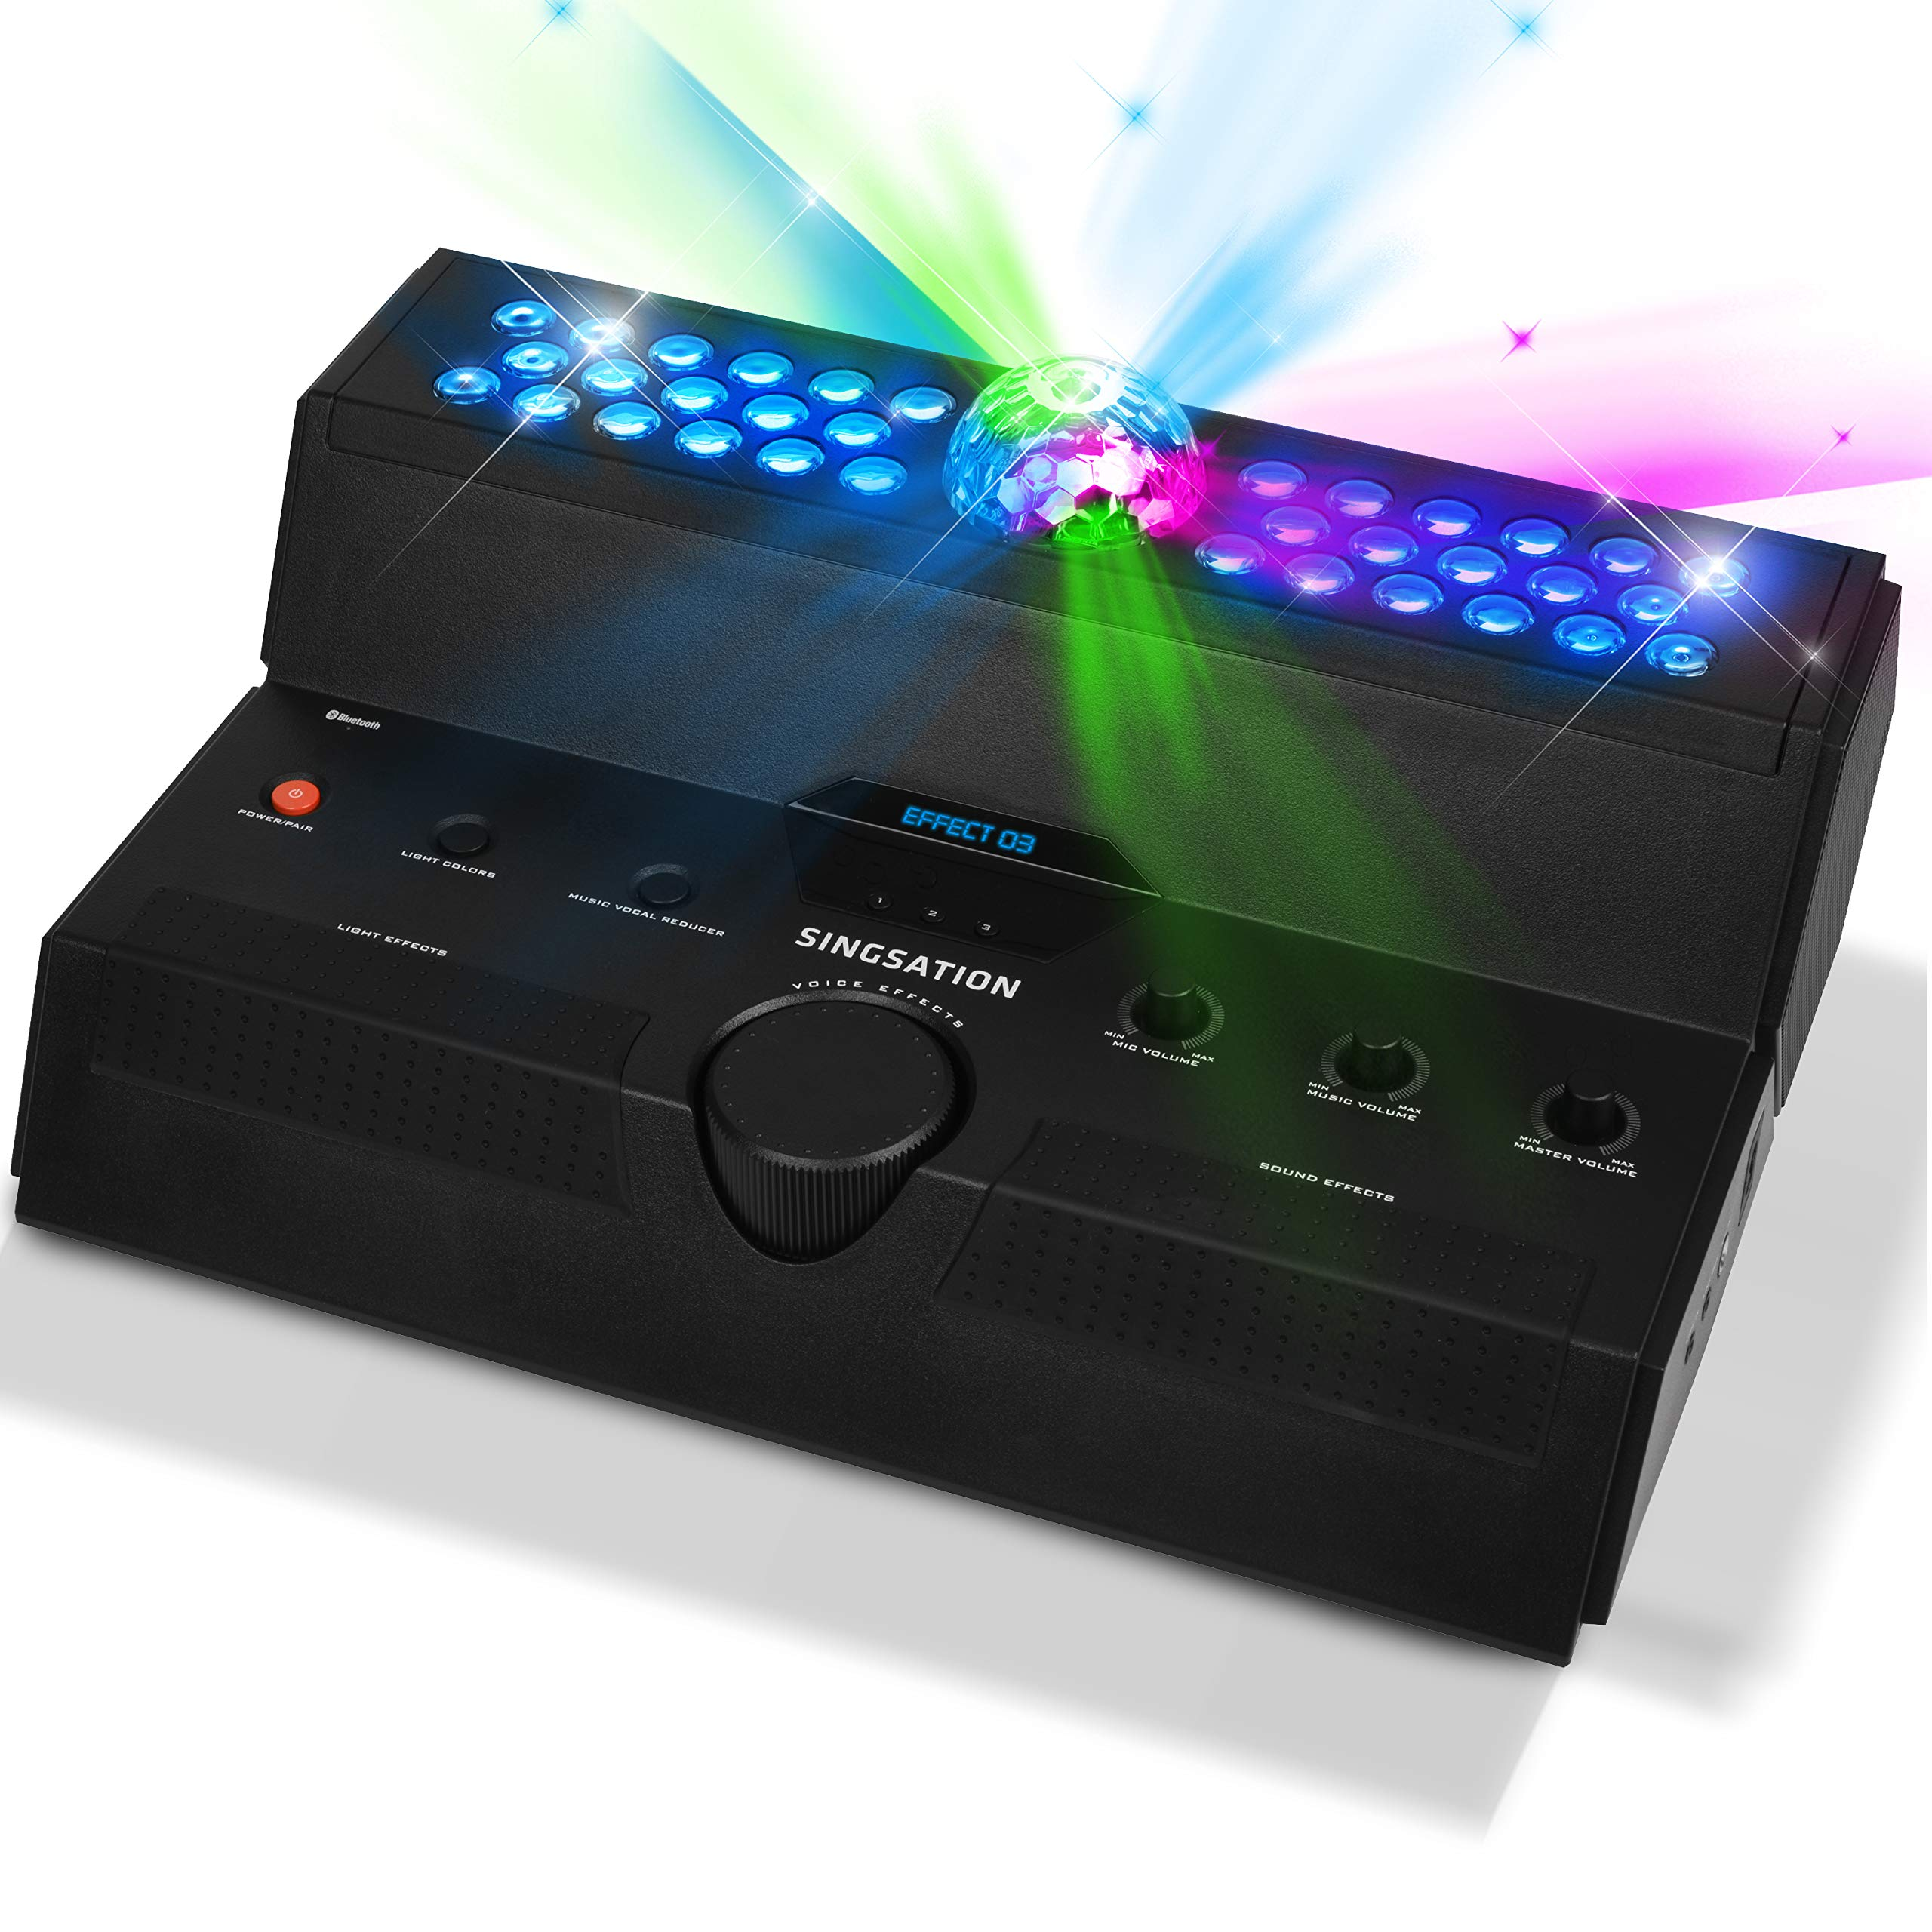 Singsation Karaoke Machine - Mainstage All-In-One Premium Karaoke Party System w/Vocal, Sound and Light Effects, Two Microphones and Sound System by 808 (Image #7)